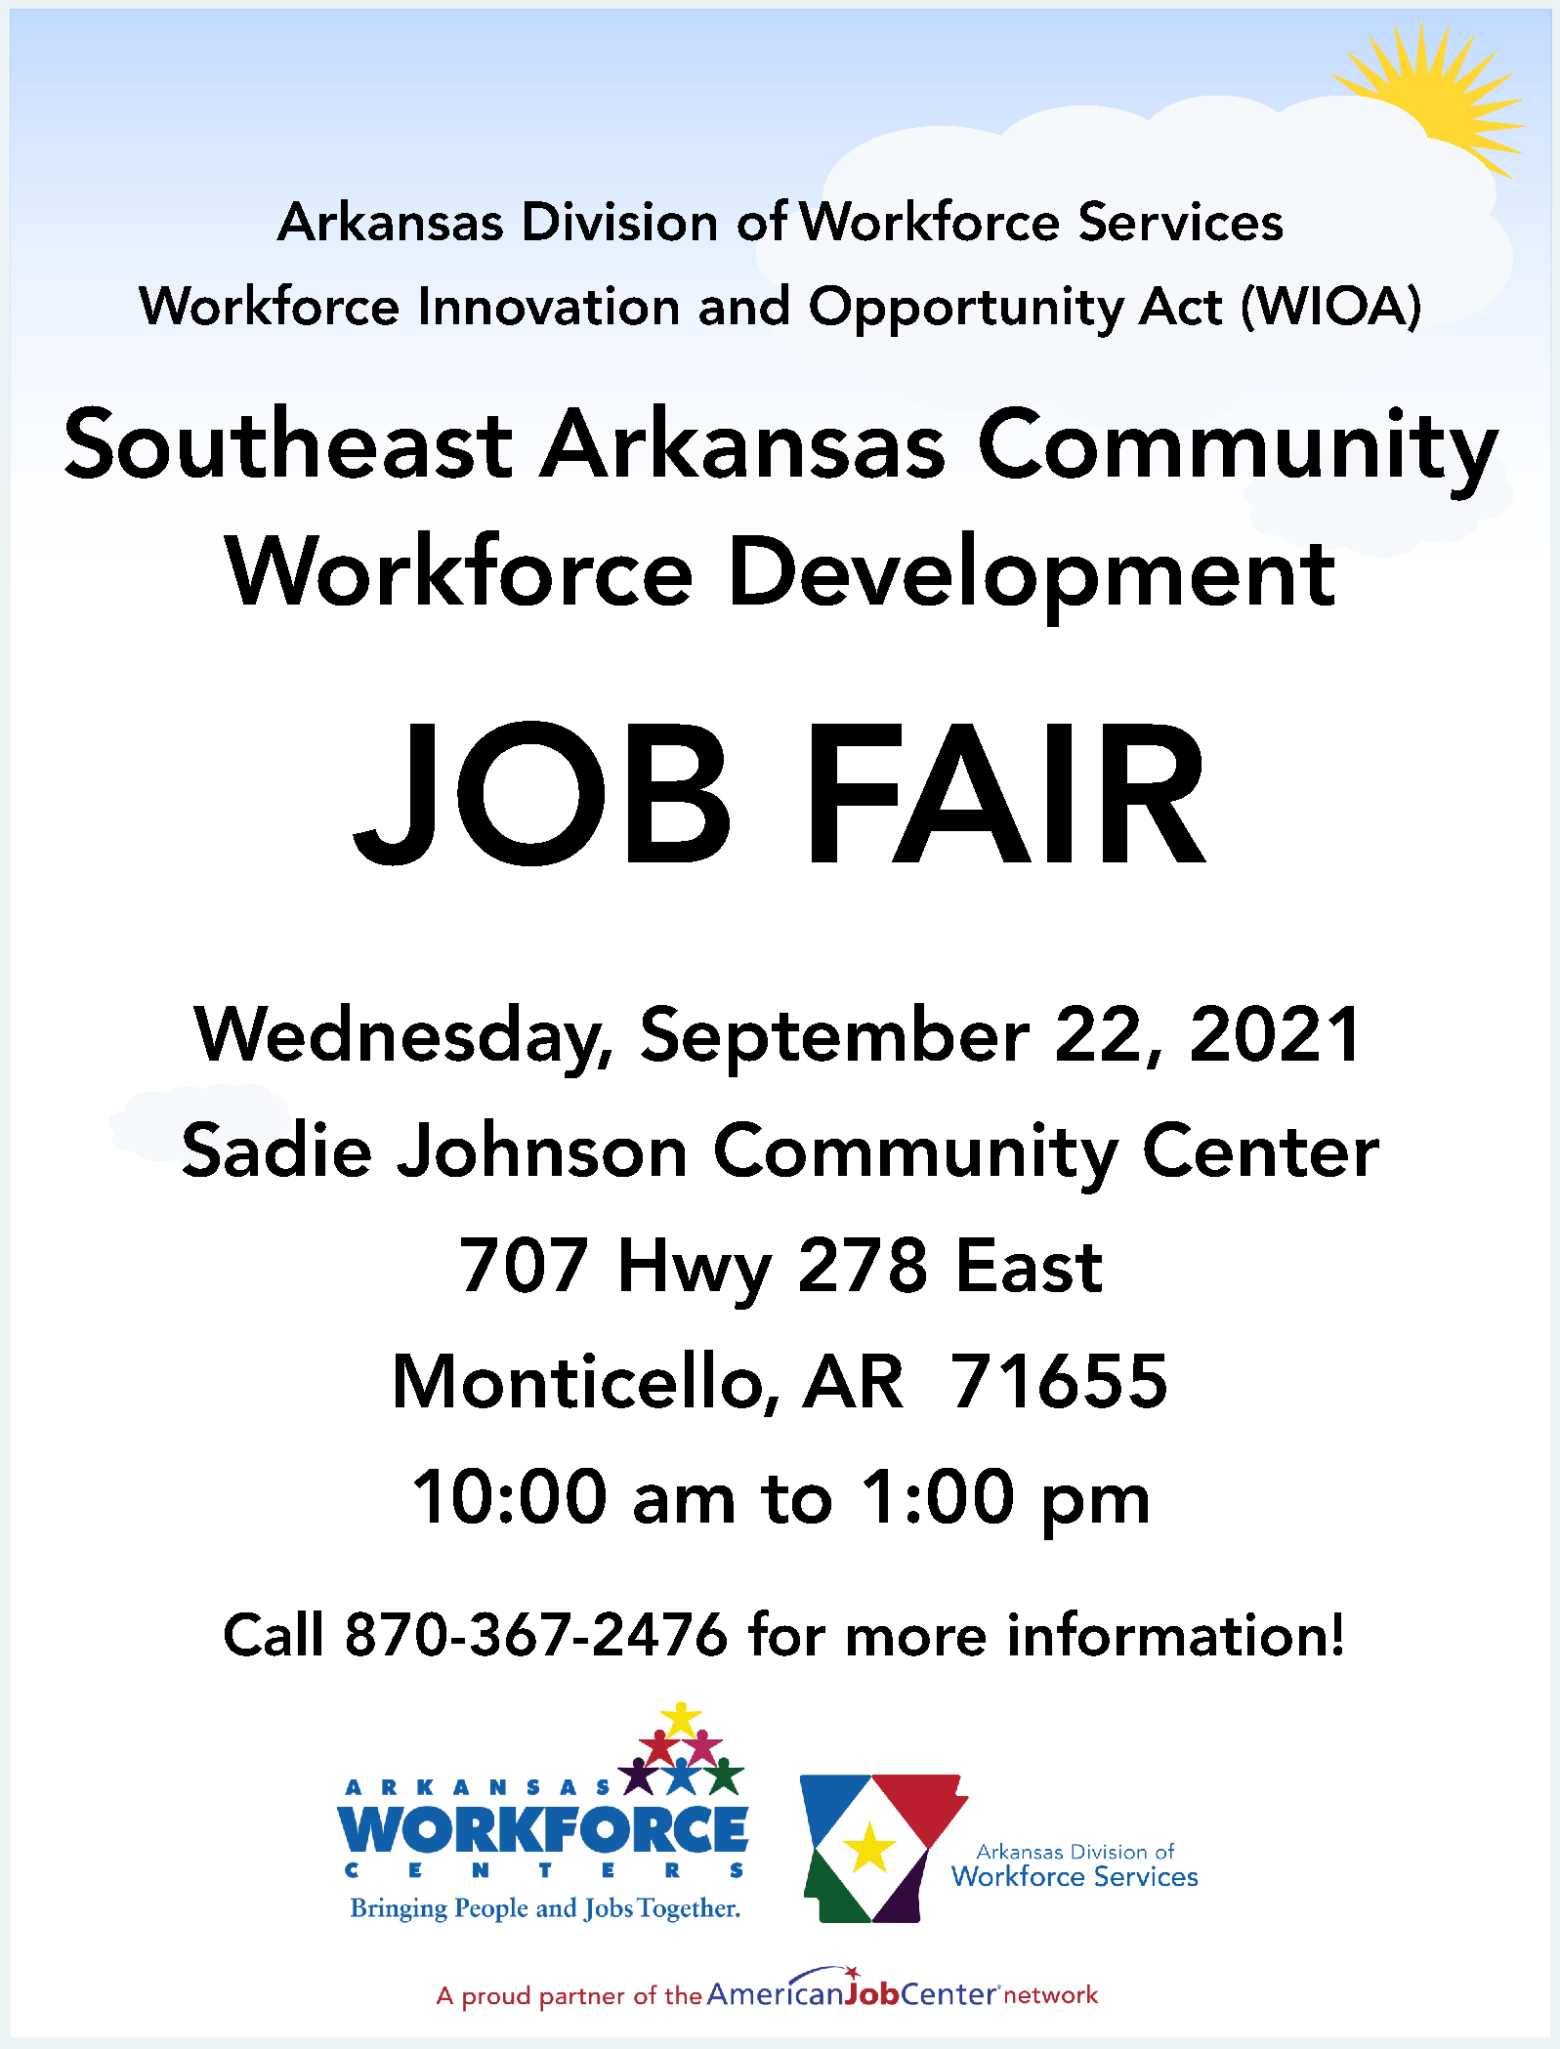 Job Fair coming to Monticello in late September